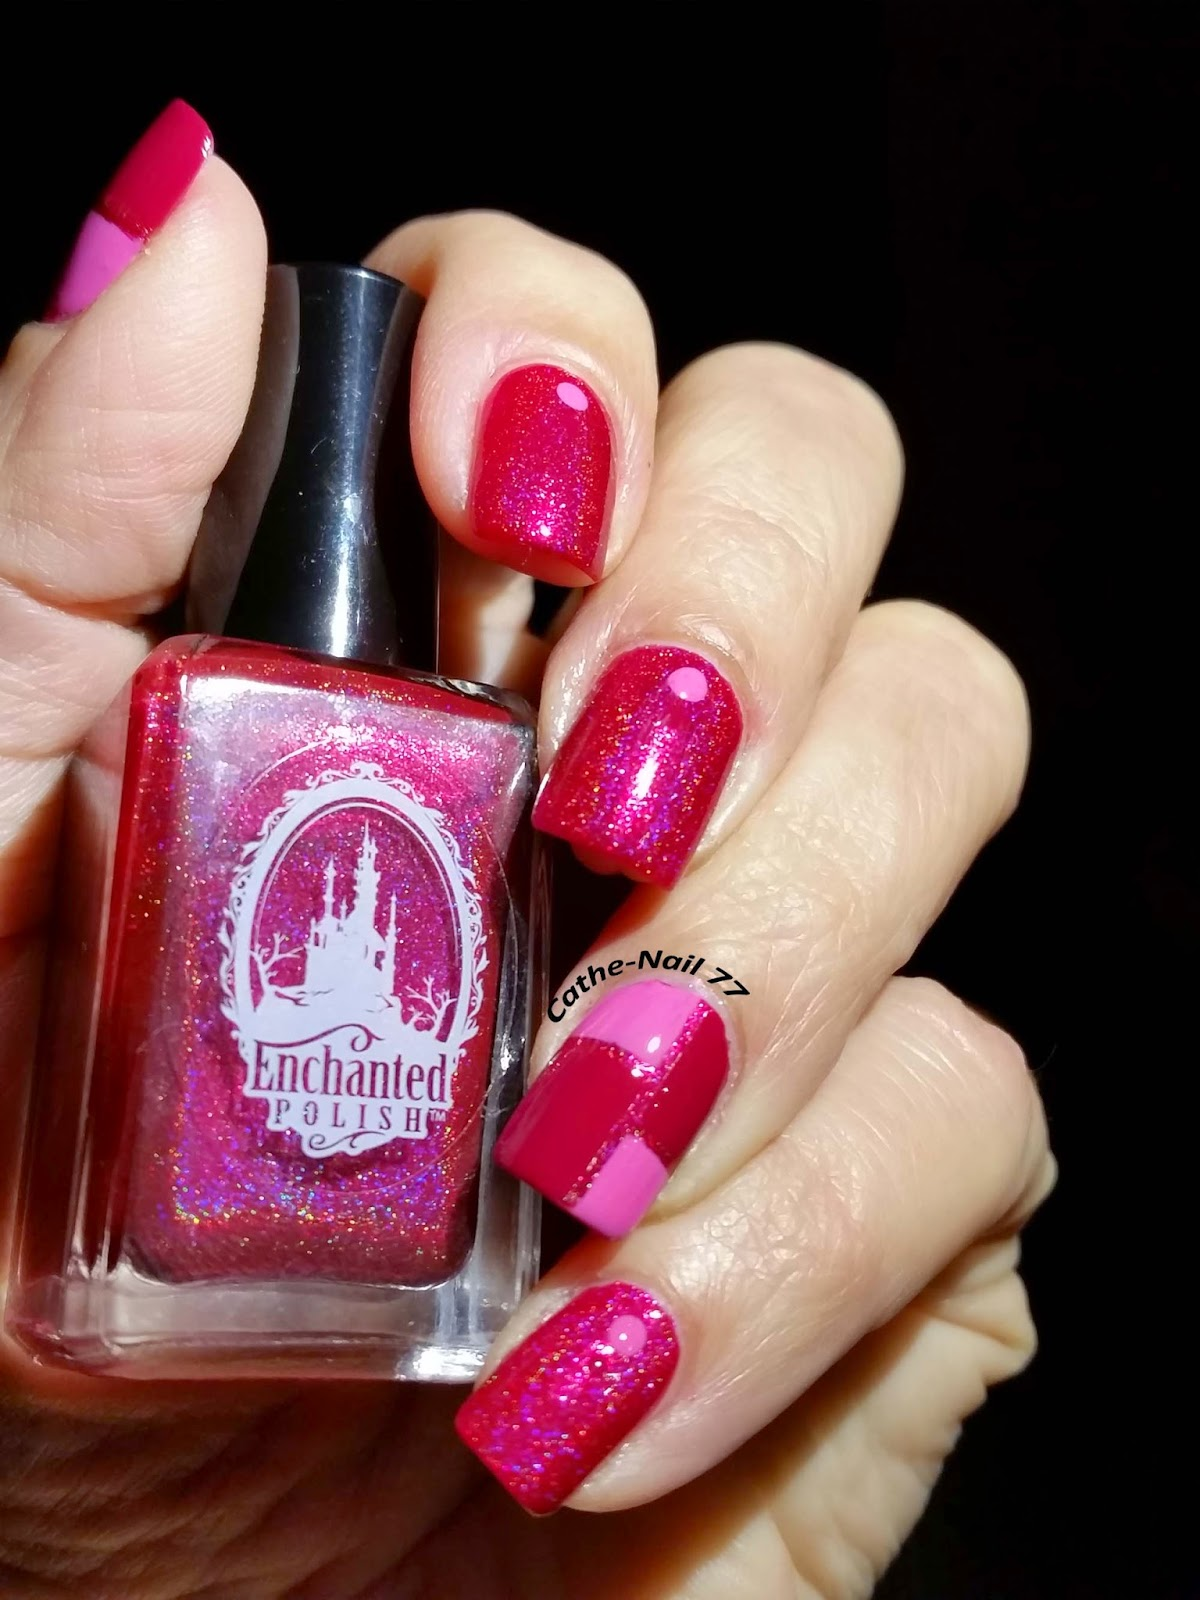 http://cathenail.blogspot.fr/2015/02/enchanted-polish-september-2014-accent.html